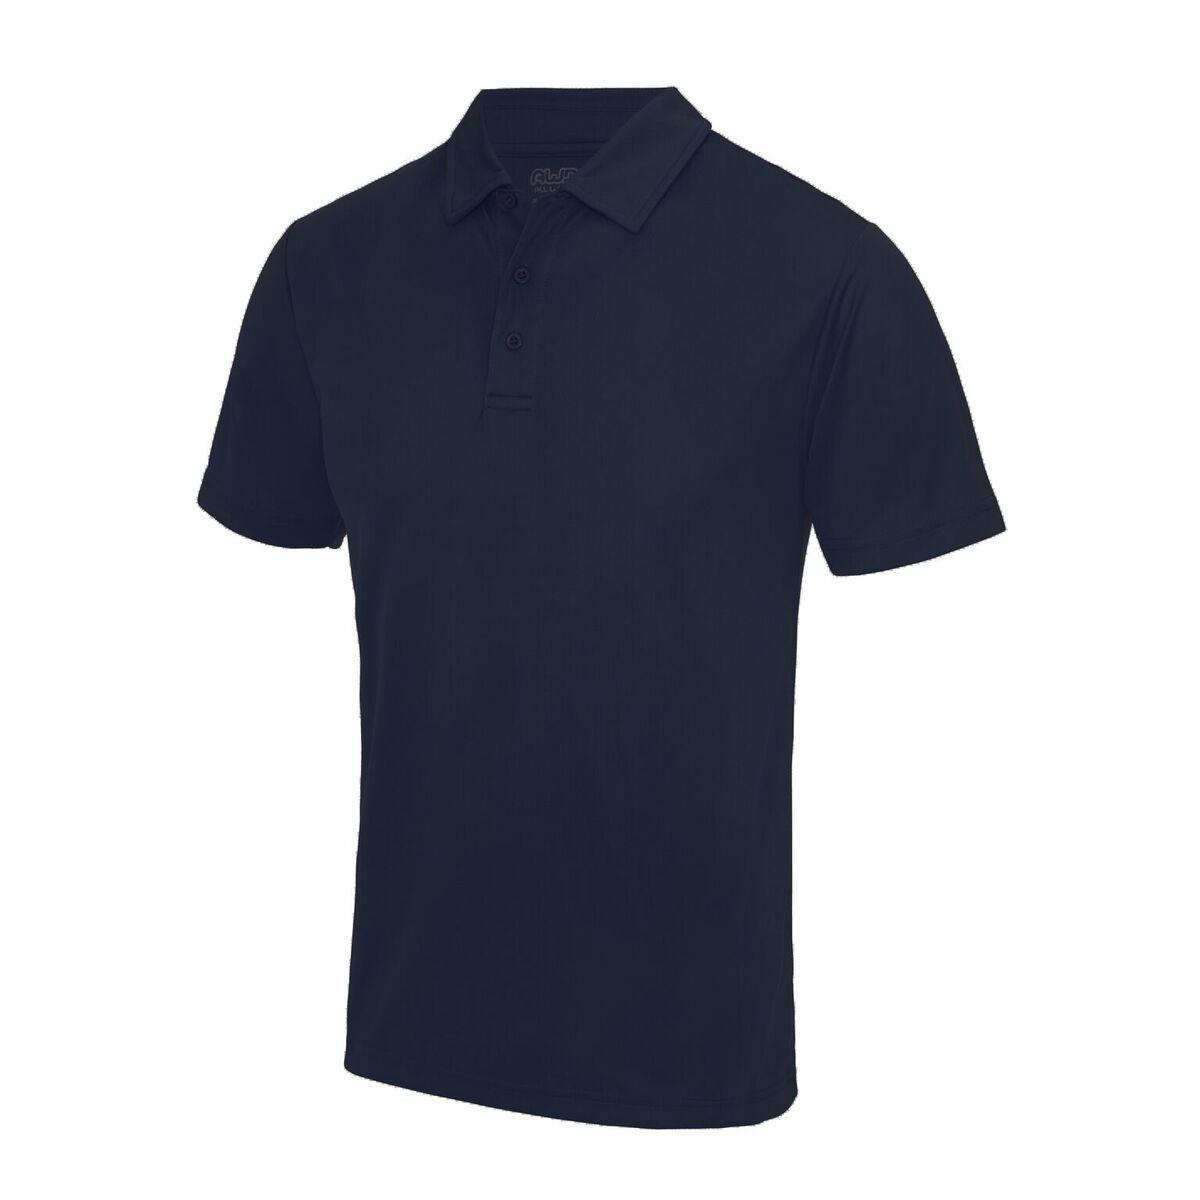 Poolside Polo Shirt